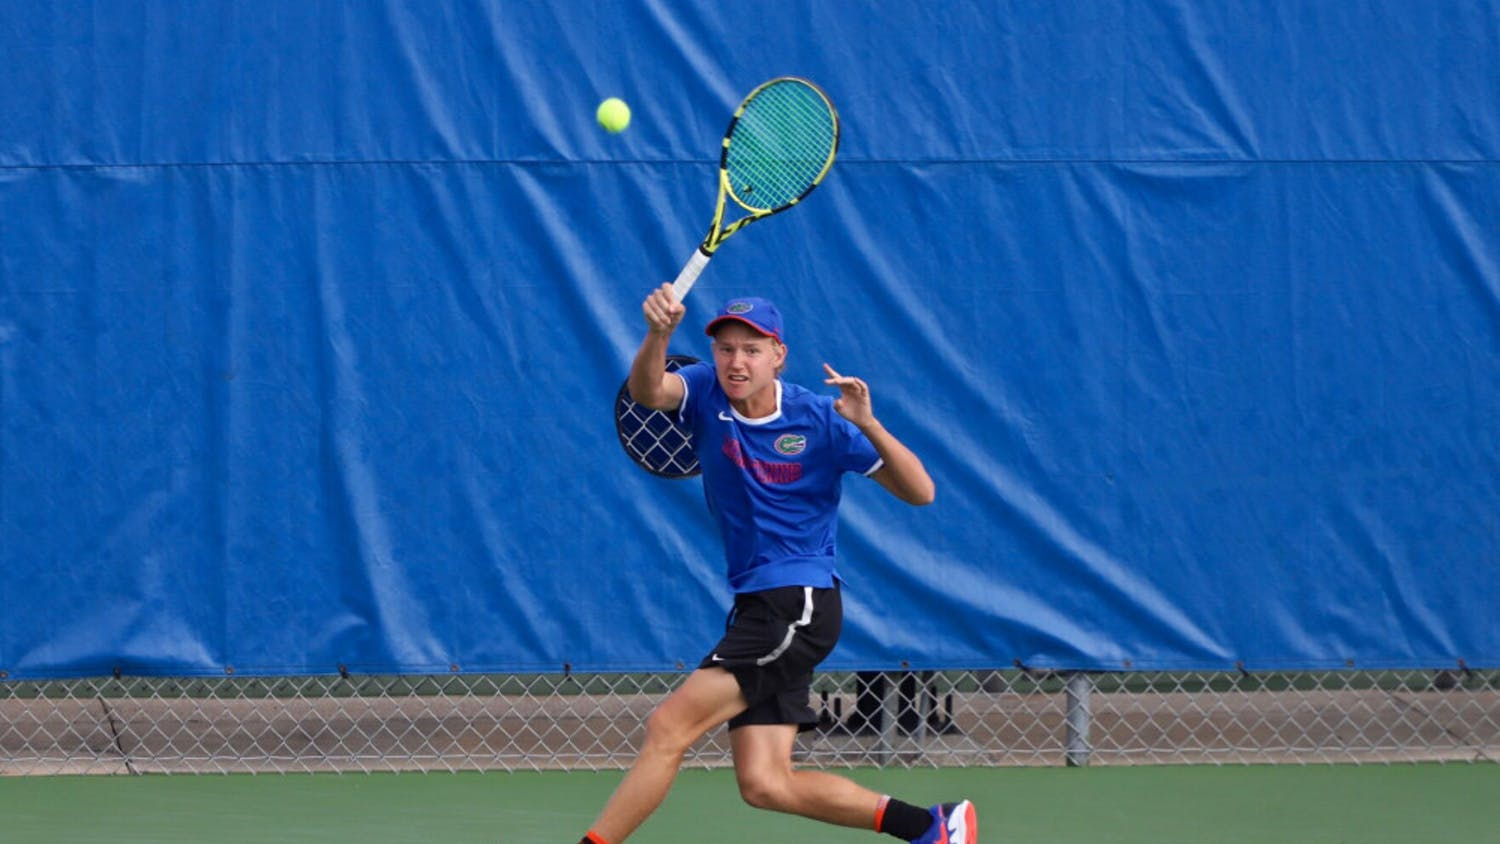 Lukas Greif swings at a tennis ball on the fourth day of the ITA Tournament in Gainesville last season. He's ranked 96th ahead of Florida's matchup with FAU Saturday.